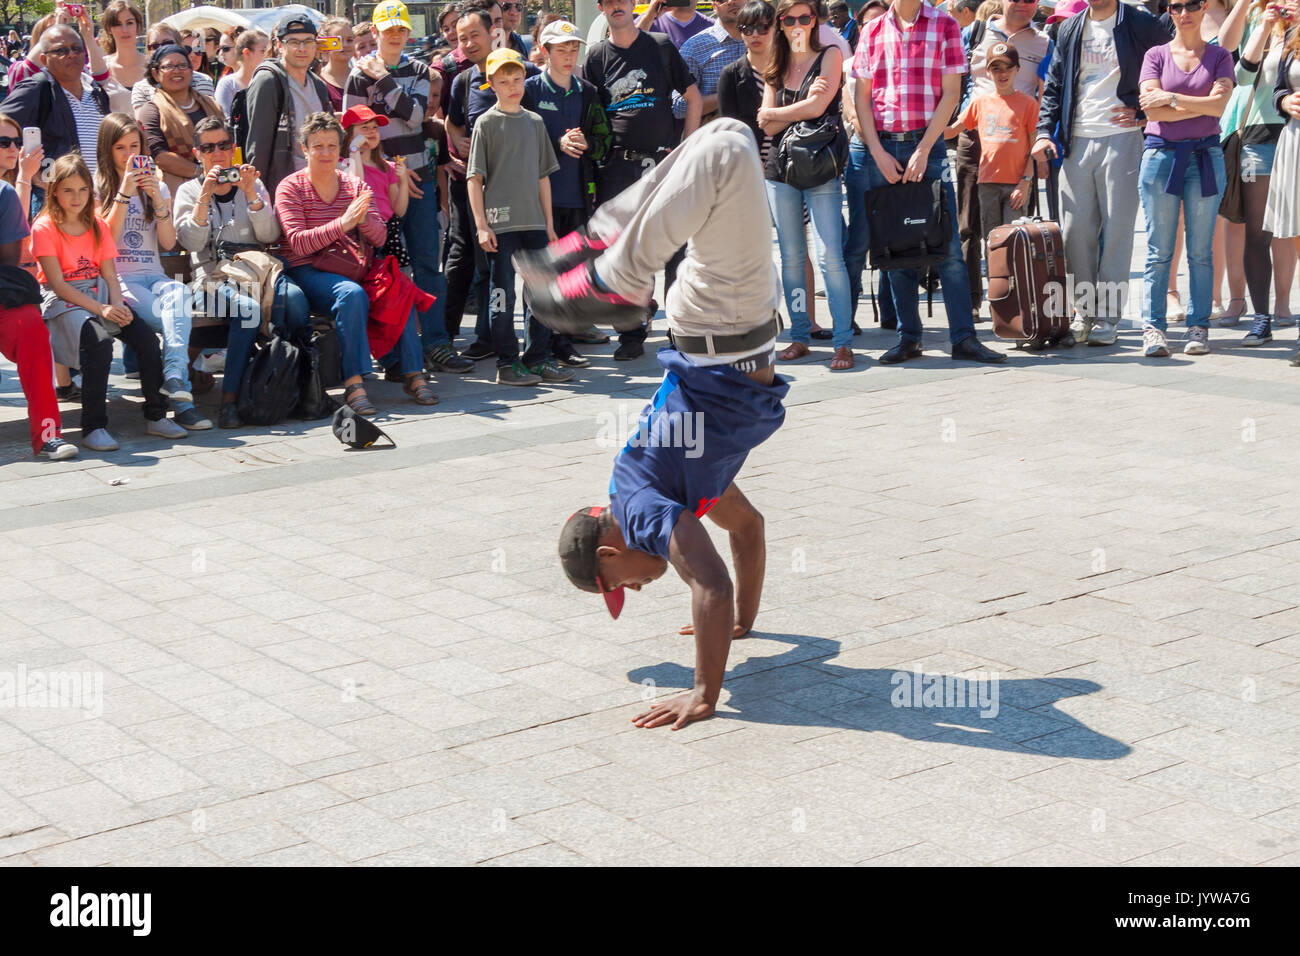 PARIS, FRANCE -  APRIL 25:B-boy doing some breakdance moves in front a street crowd, at Arch of Triumph on april 25, 2013 in Paris. - Stock Image